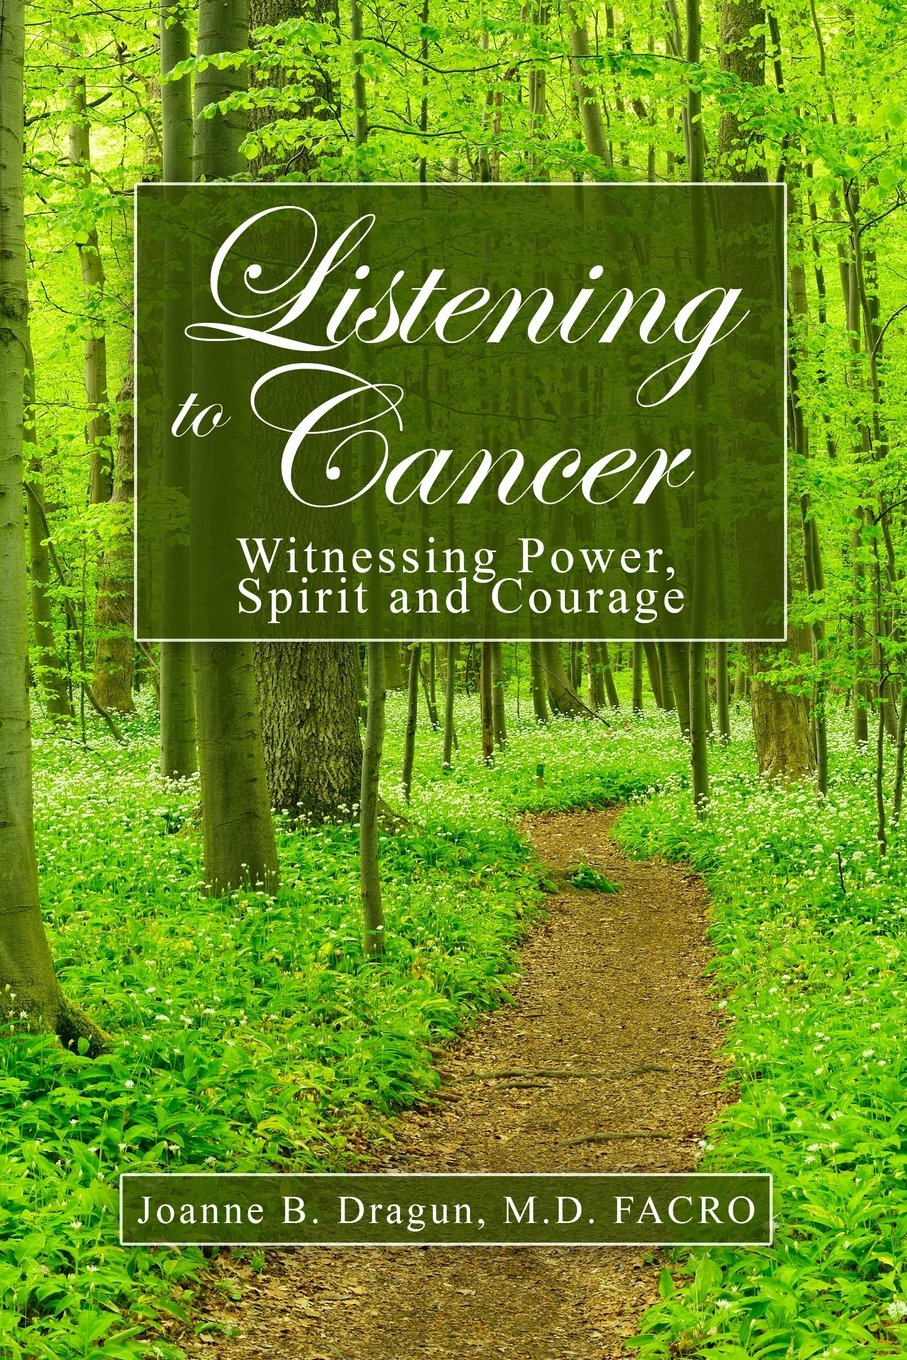 Download Listening to Cancer: Witnessing Power, Spirit and Courage ebook